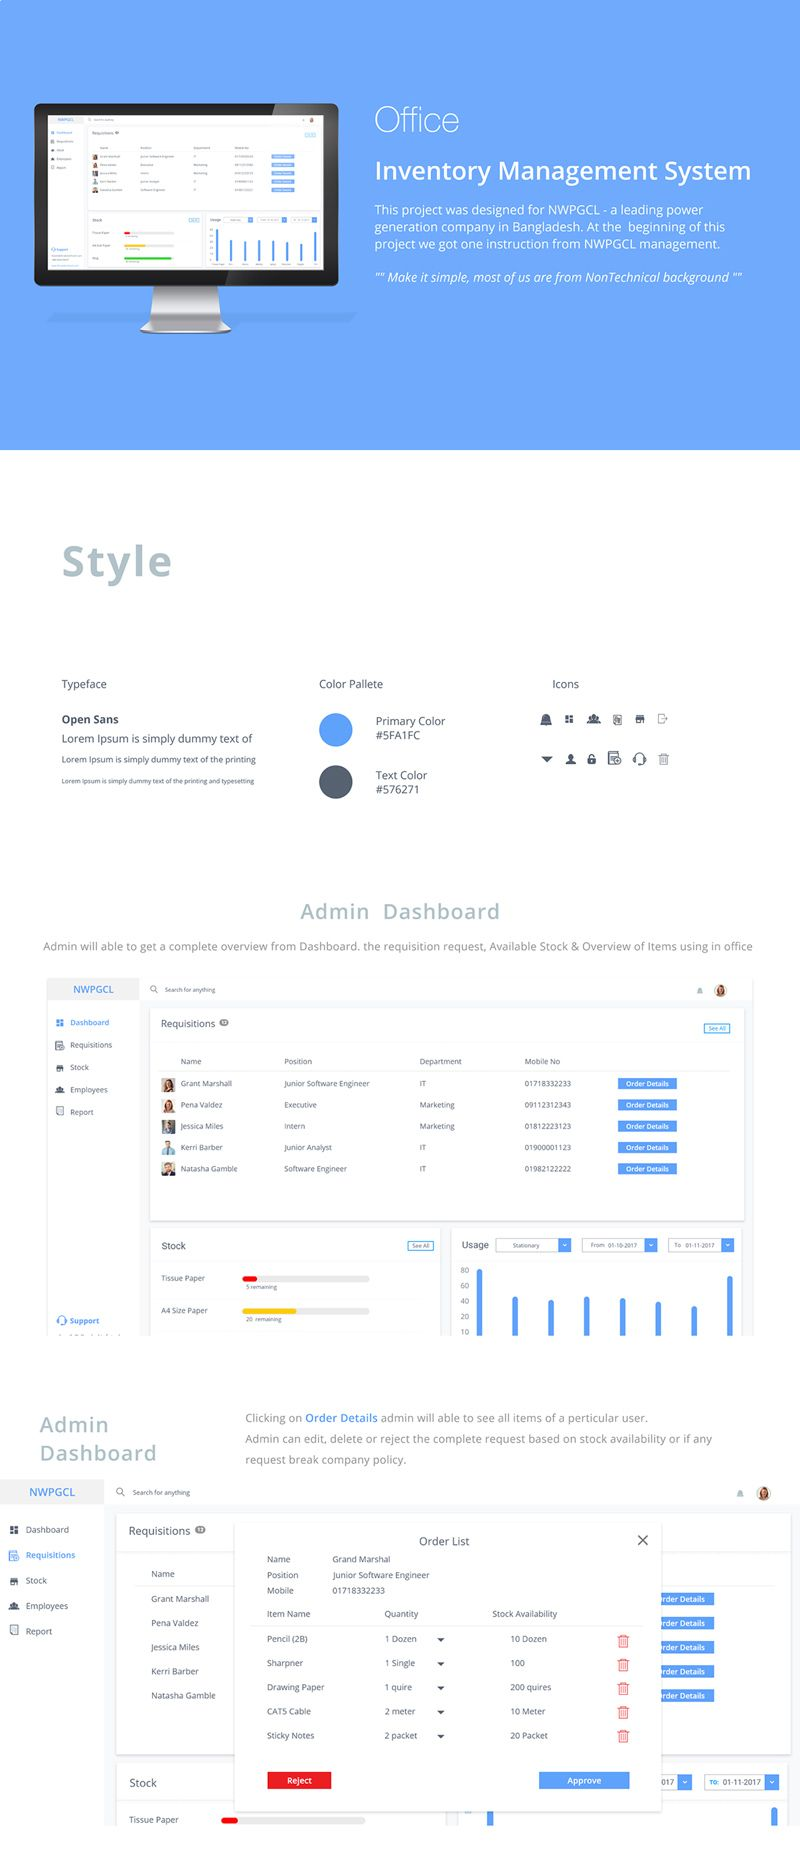 Adobe XD Inventory management system dashboard template | Adobe XD ...